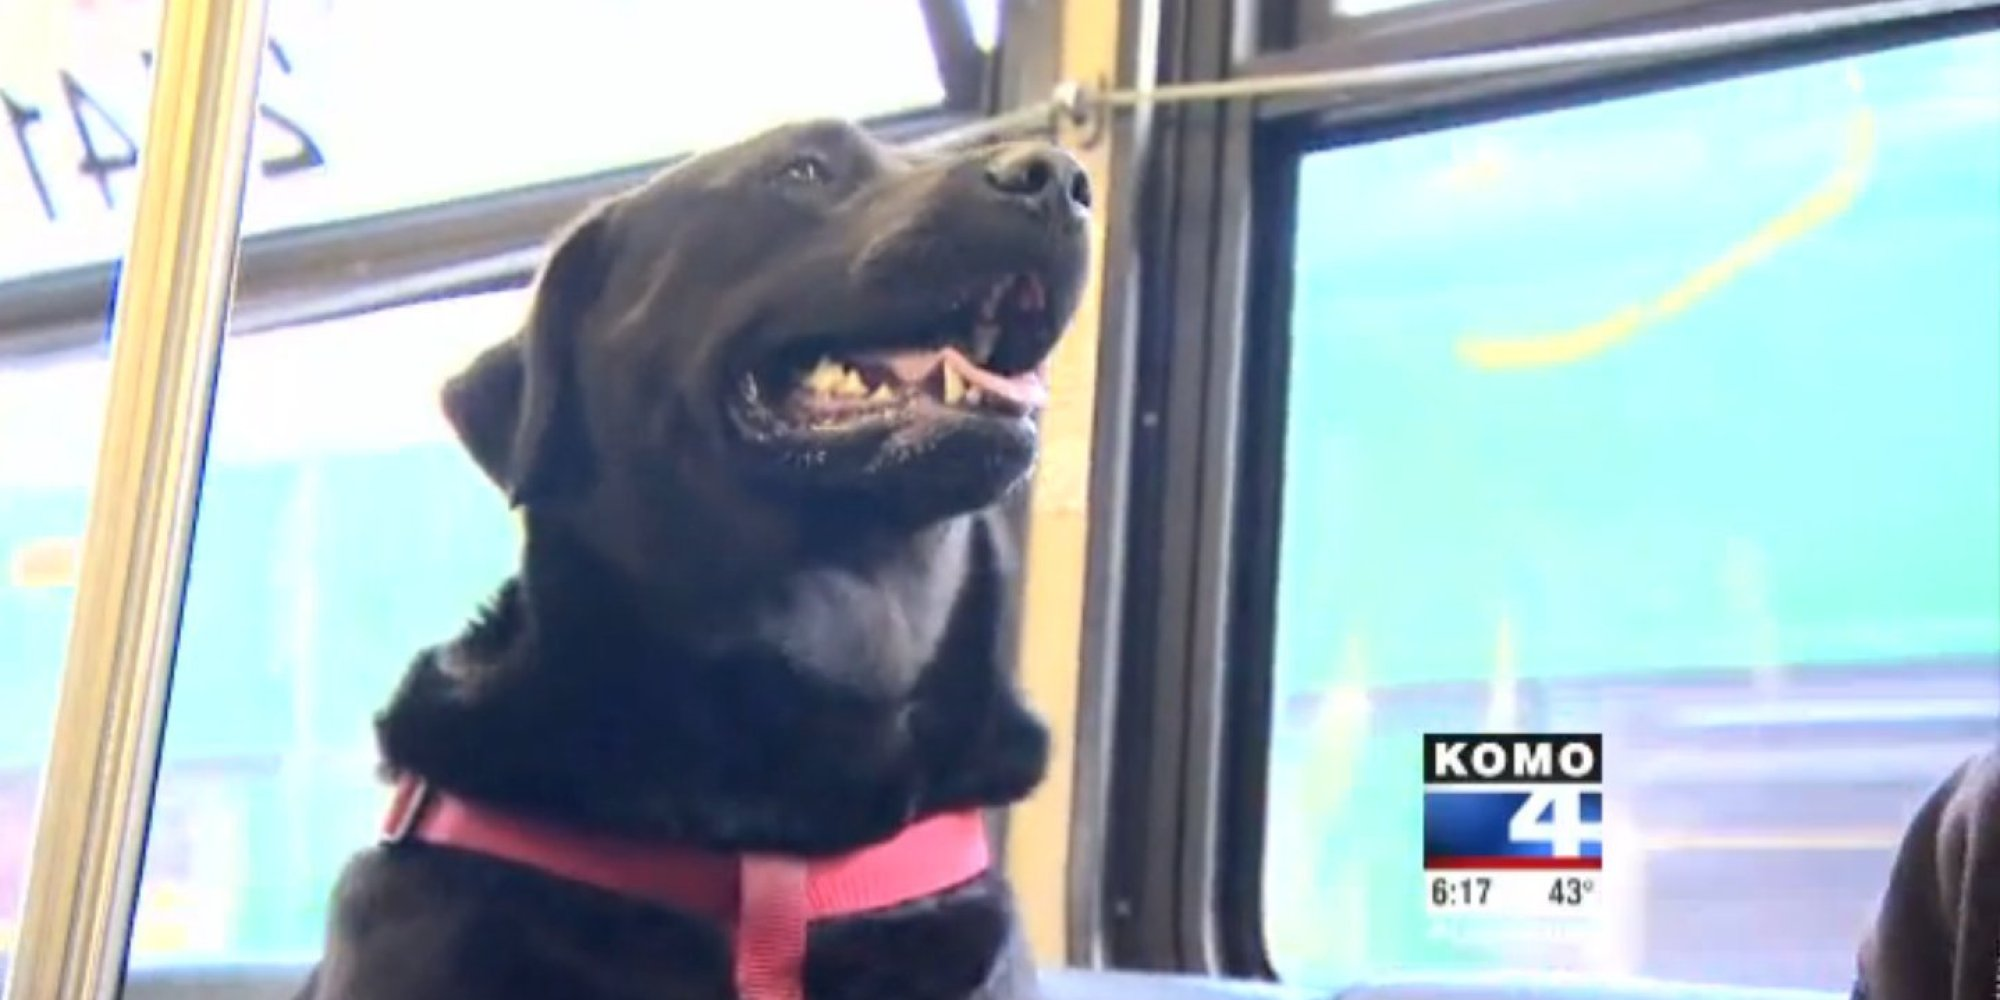 South Seattle College >> Seattle Dog Figures Out Buses, Starts Riding Solo To The